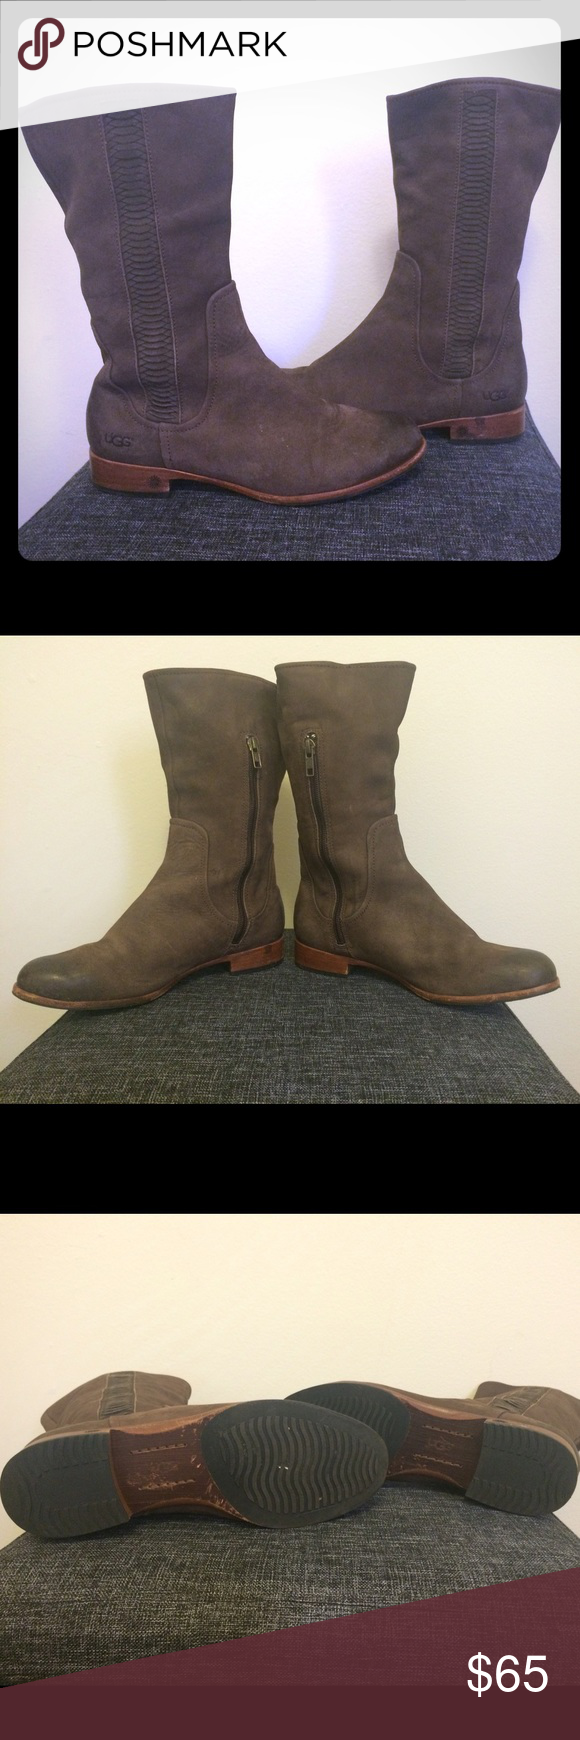 🅿️🅿️$40! Ugg suede ankle boots-Size 7 Gently used Ugg suede ankle boots. Size 7. These boots do have some minor scuffing/markings, but have a lot of life left and are so comfortable. They have the signature soft insole. See all pics and ask questions. UGG Shoes Ankle Boots & Booties